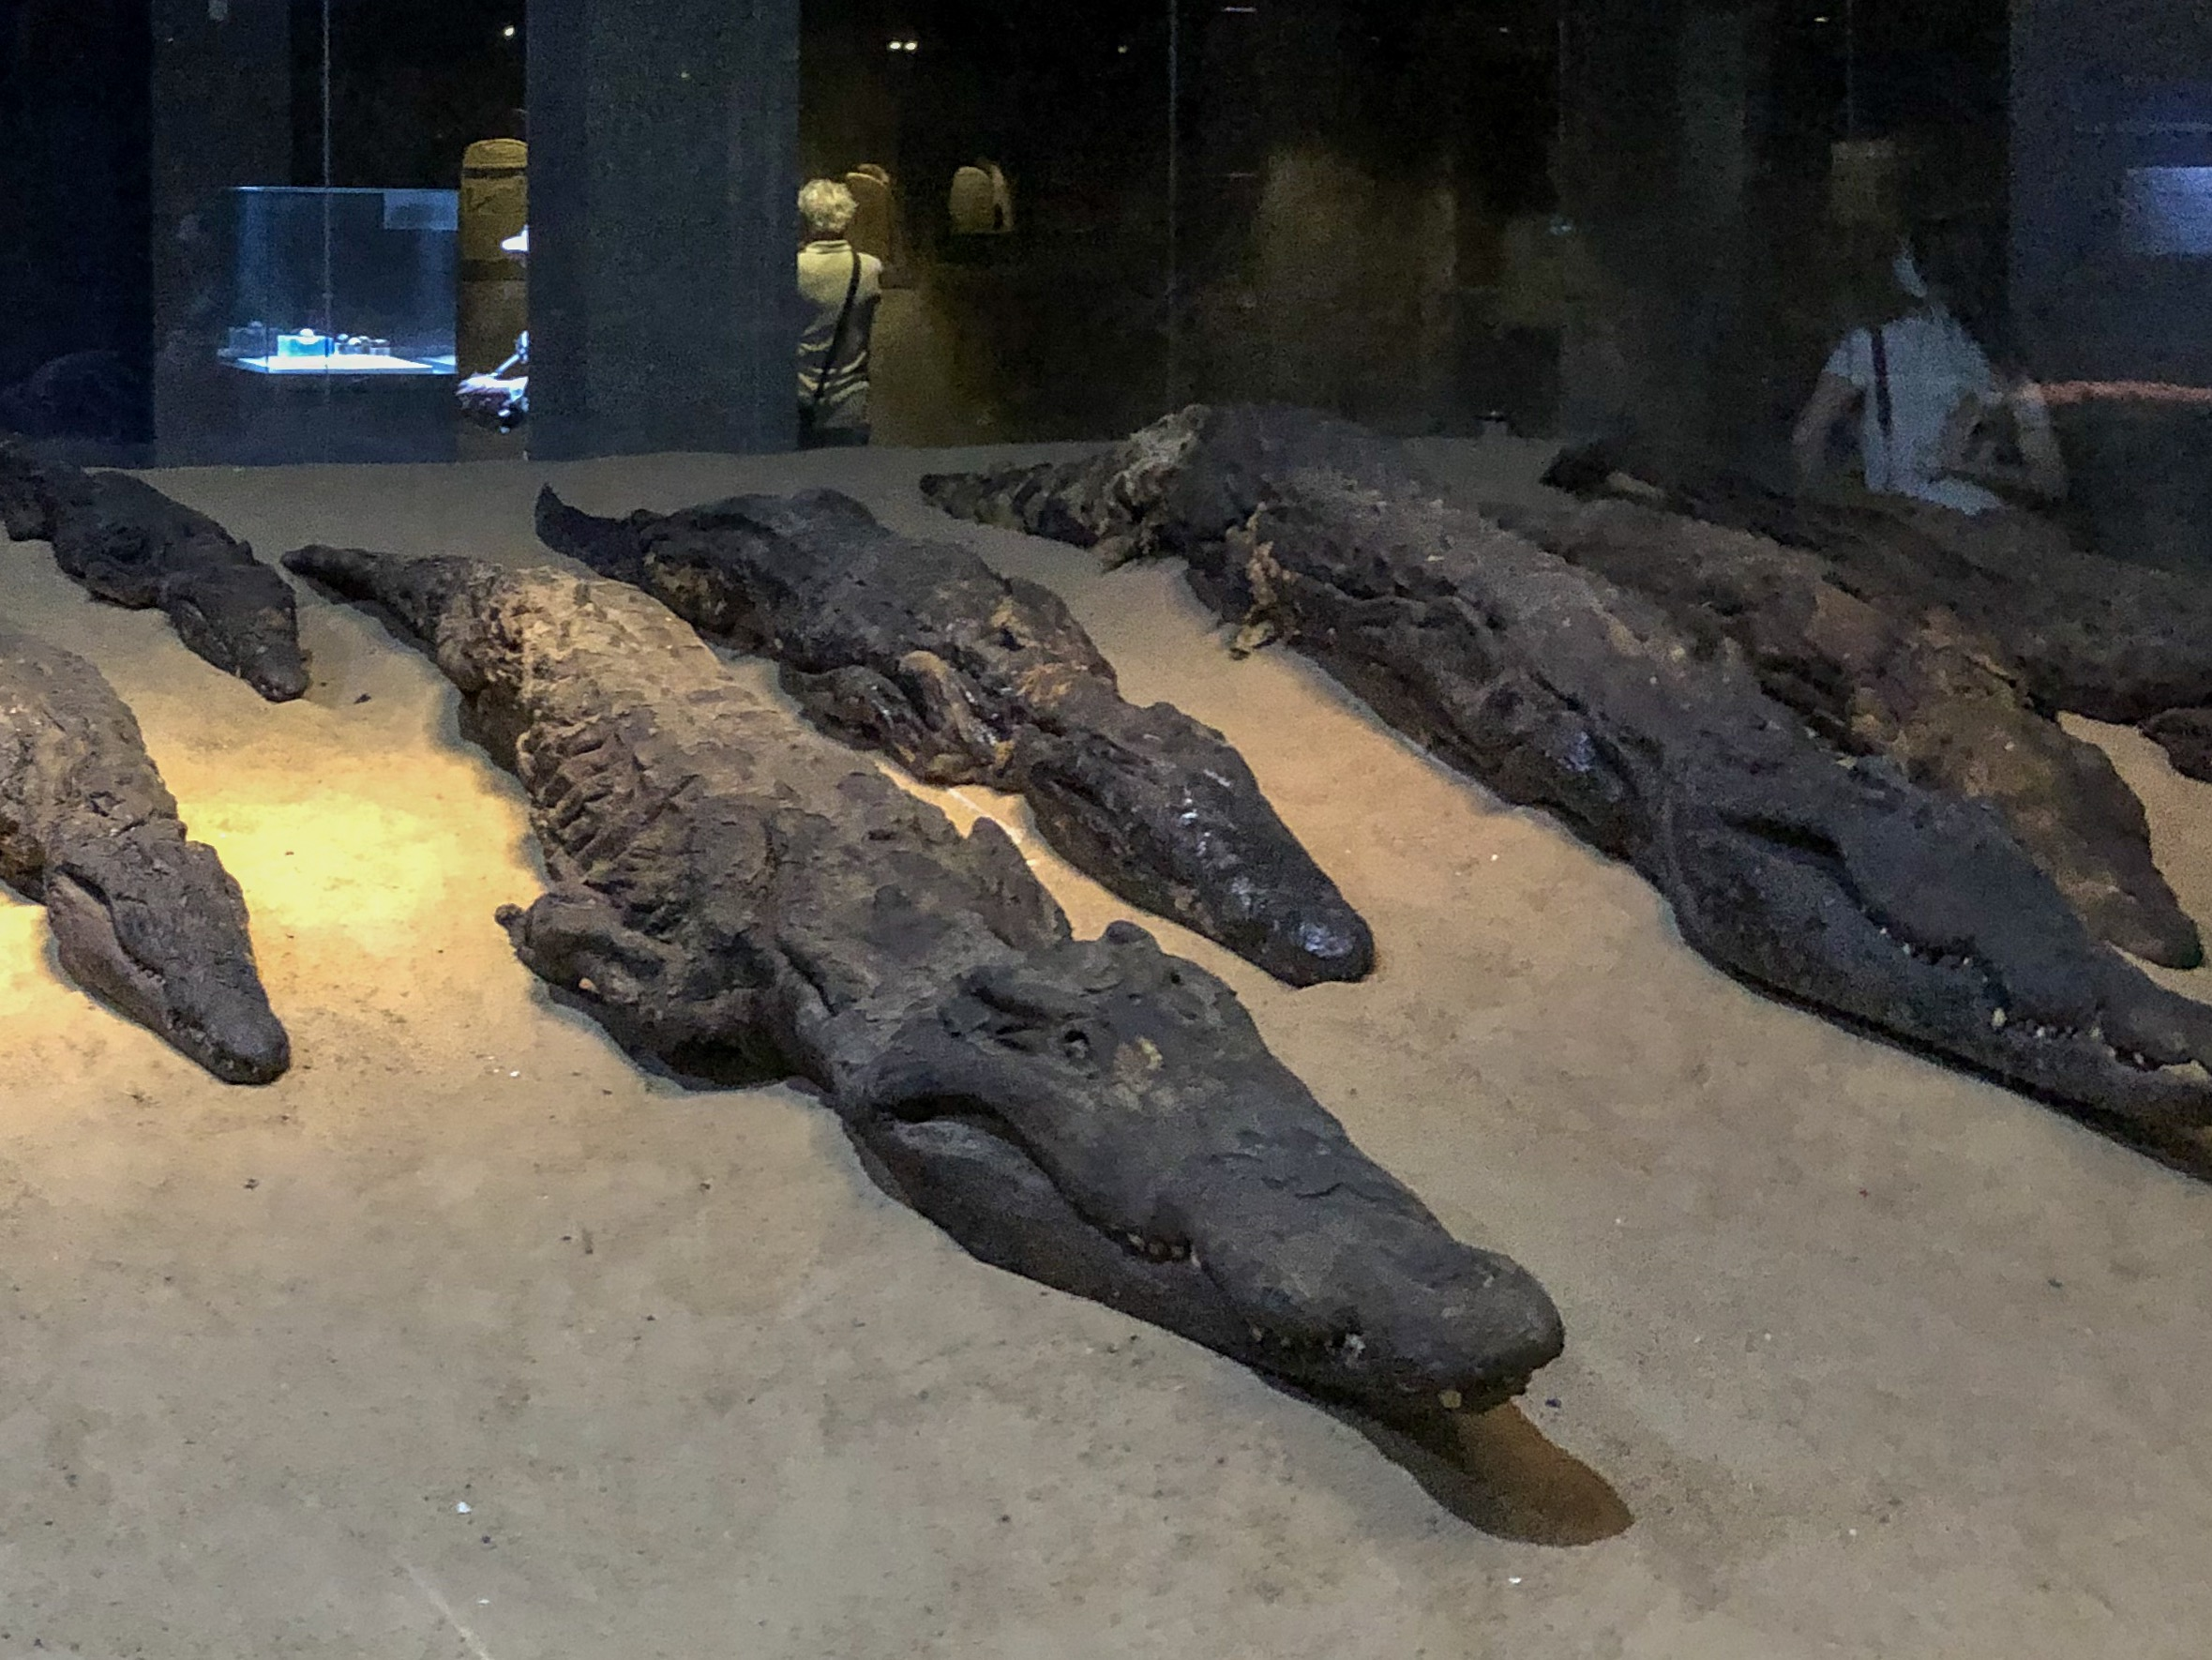 Be sure to see the mummified crocs after wandering the ruins of Kom Ombo. Mummies like these were put into tombs so the ferocious beasts could protect the dead in the afterlife